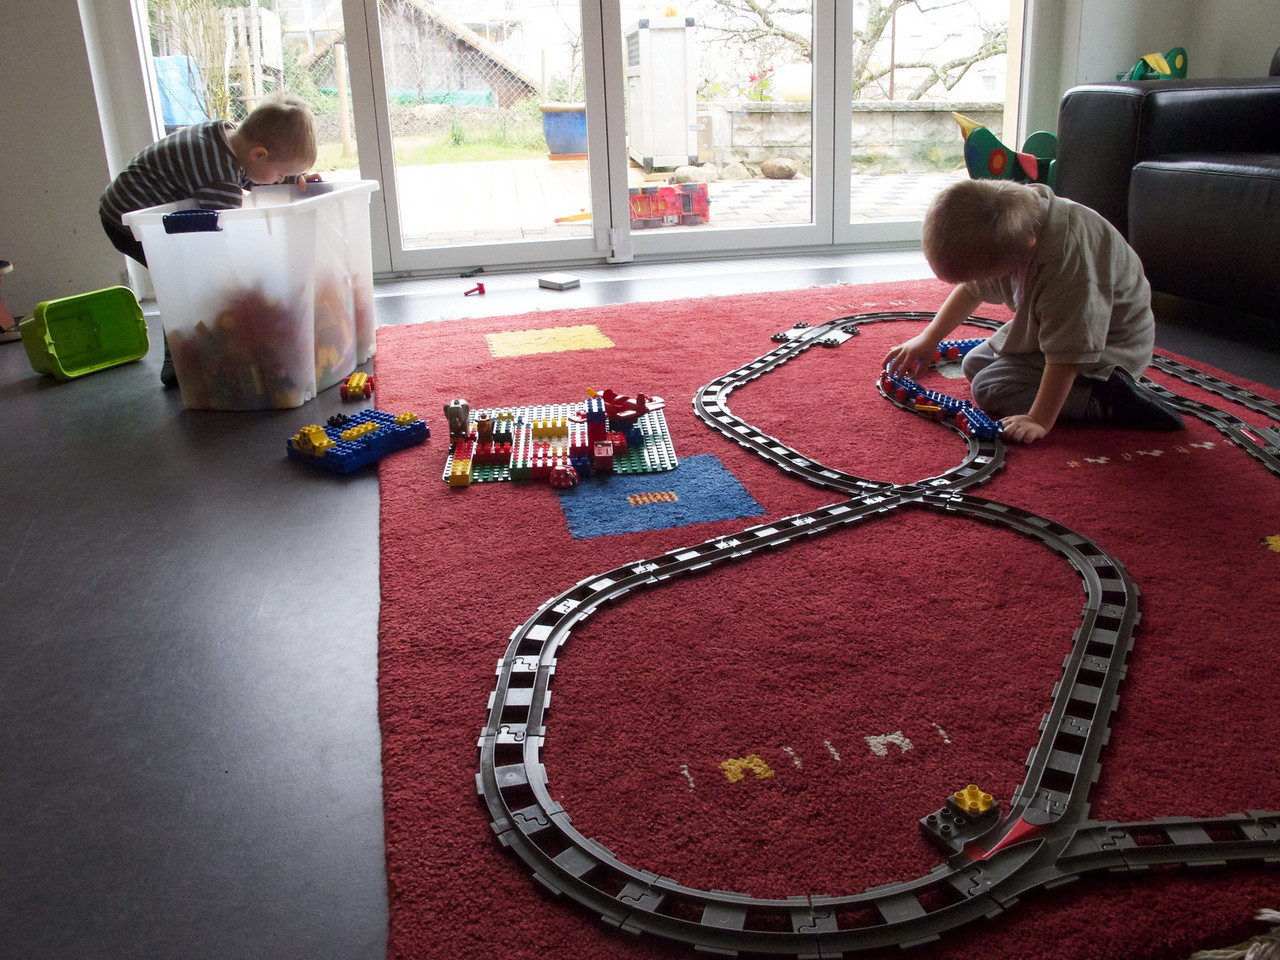 Tuesday 23rd November 2010 - Cai plays at being the fat controller